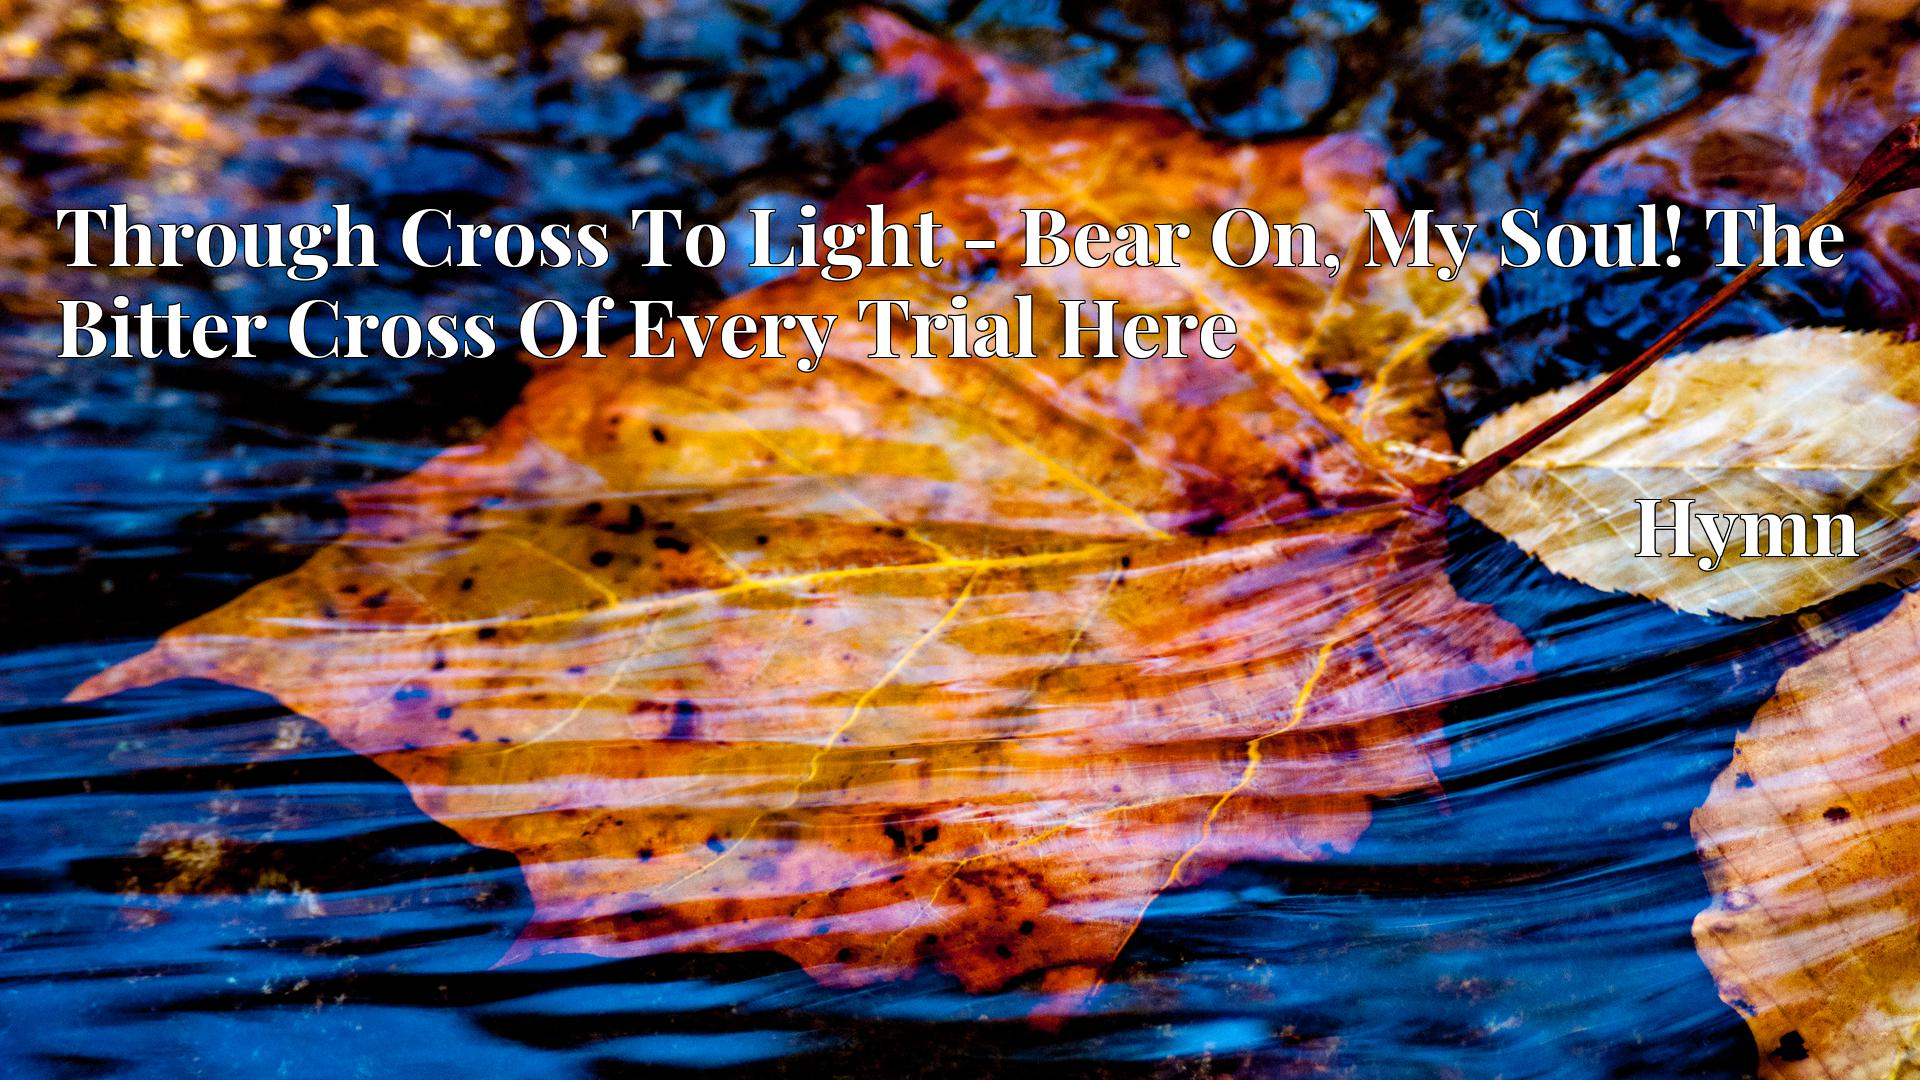 Through Cross To Light - Bear On, My Soul! The Bitter Cross Of Every Trial Here - Hymn